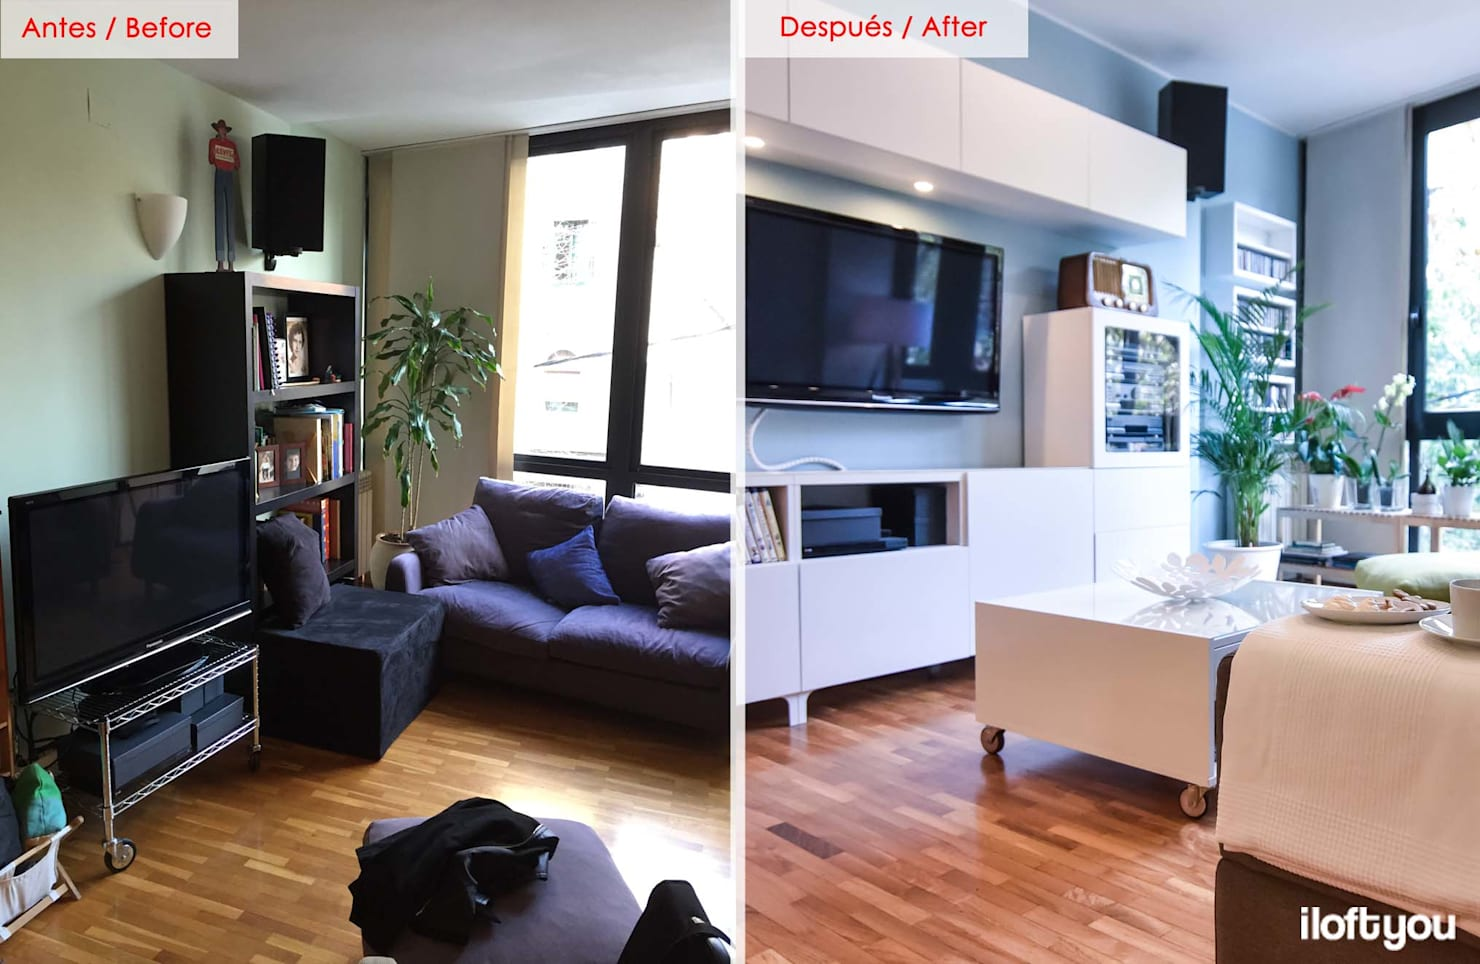 Before and after: 20 spaces change dramatically